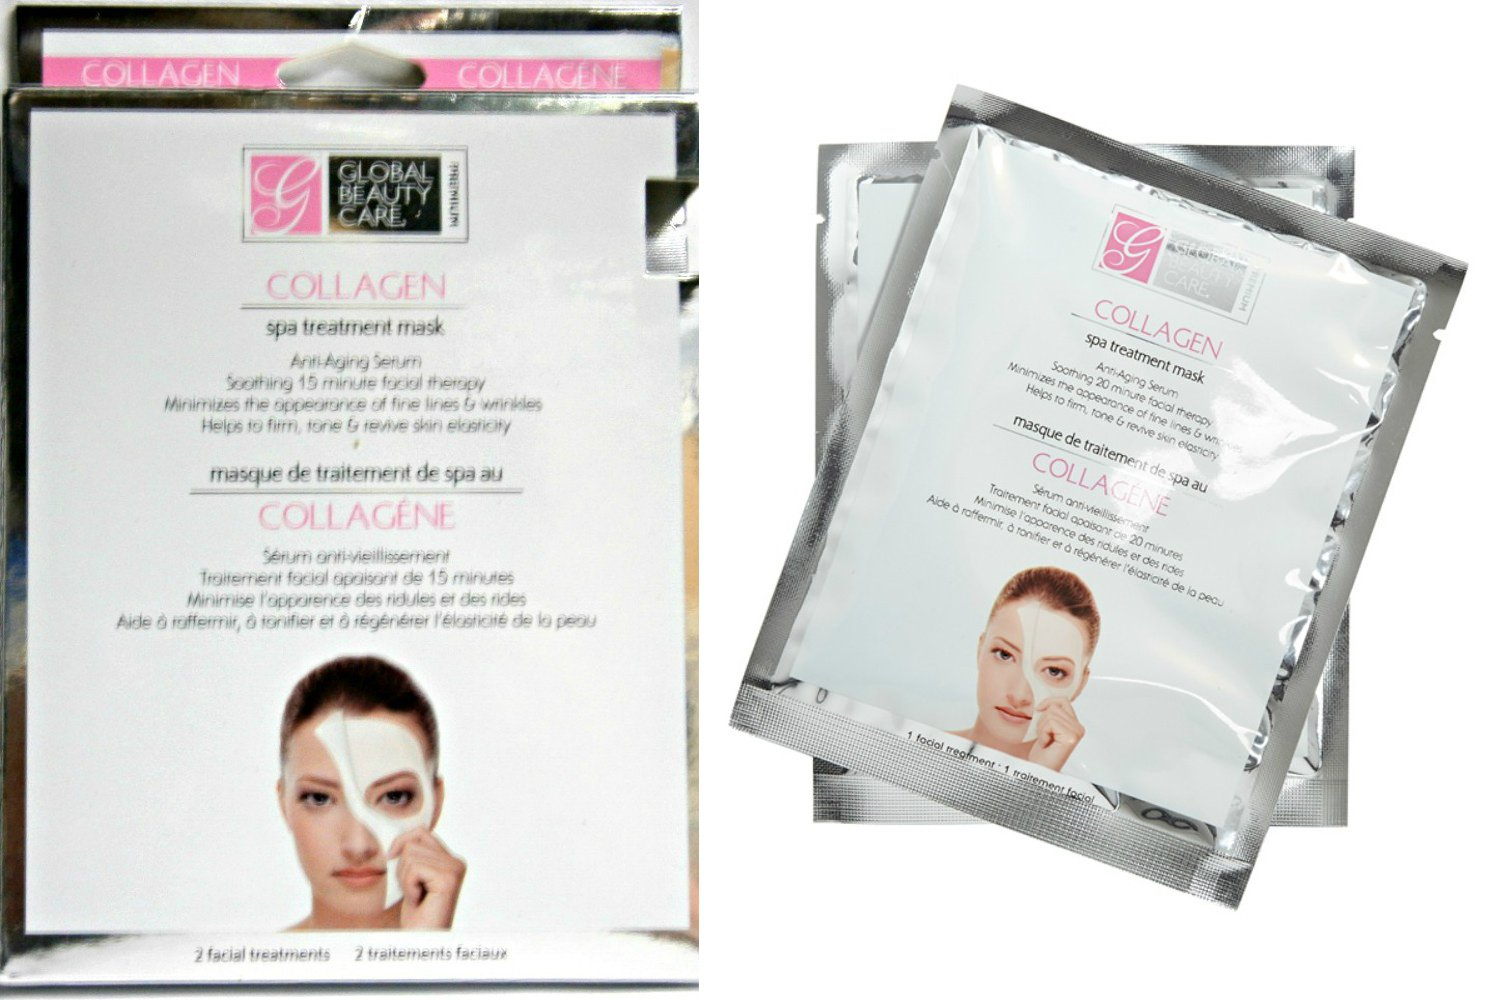 Global Beauty Care Collagen Spa Treatment Face Mask (2-Pack)